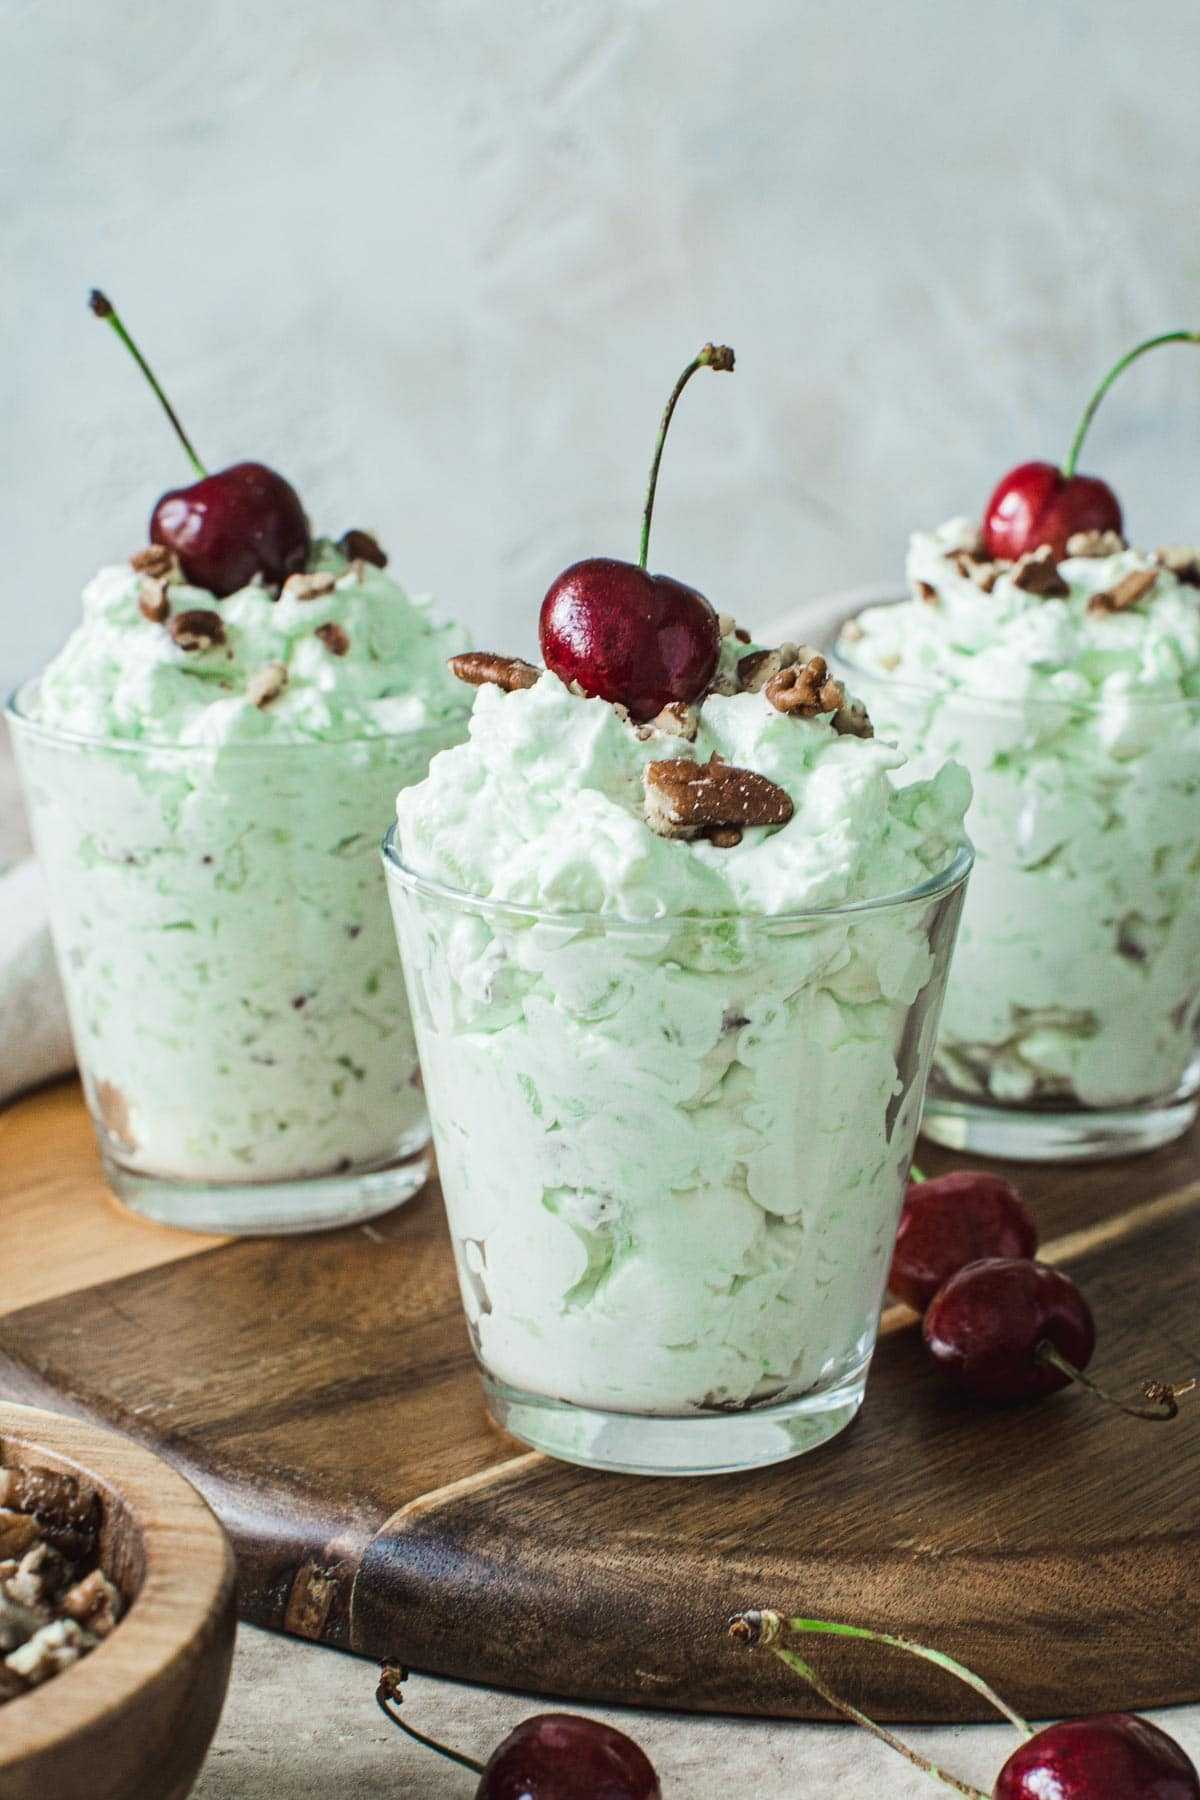 Watergate salad in glasses topped with cherries.